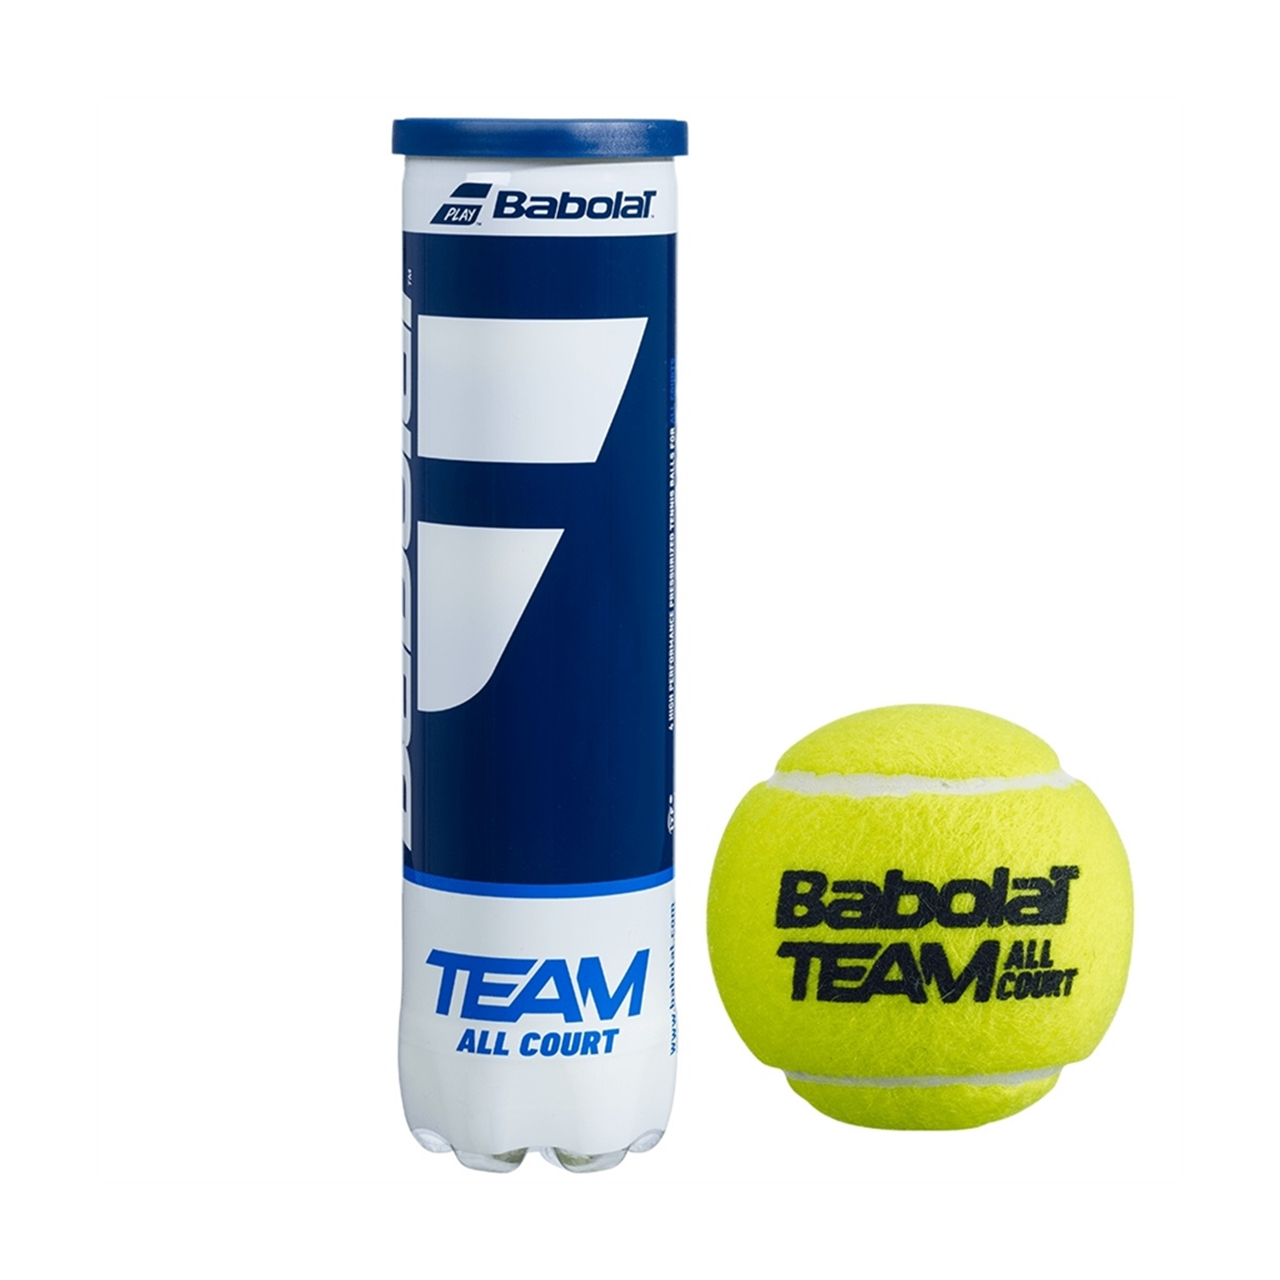 Babolat Team All Court 1 rør | Racketspesialisten.no